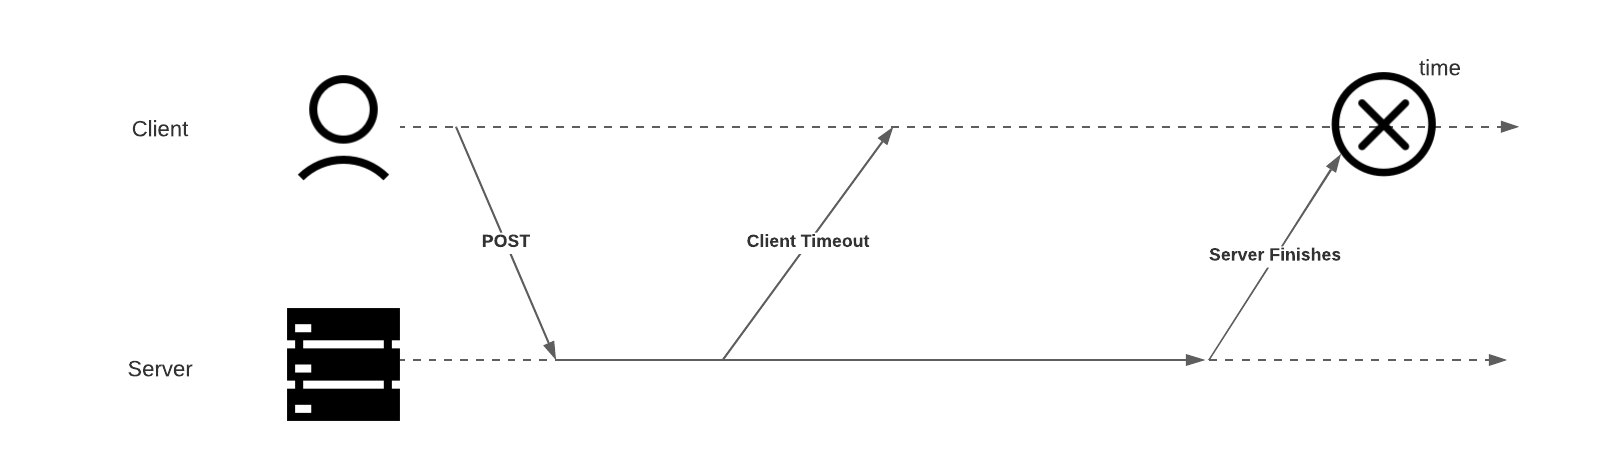 An illustration of a subtle failure case in which the client POSTs to the server, then the client times out. Later, the server finishes processing and tries to return the response, but the connection has already been closed by the client and marked as a failure.